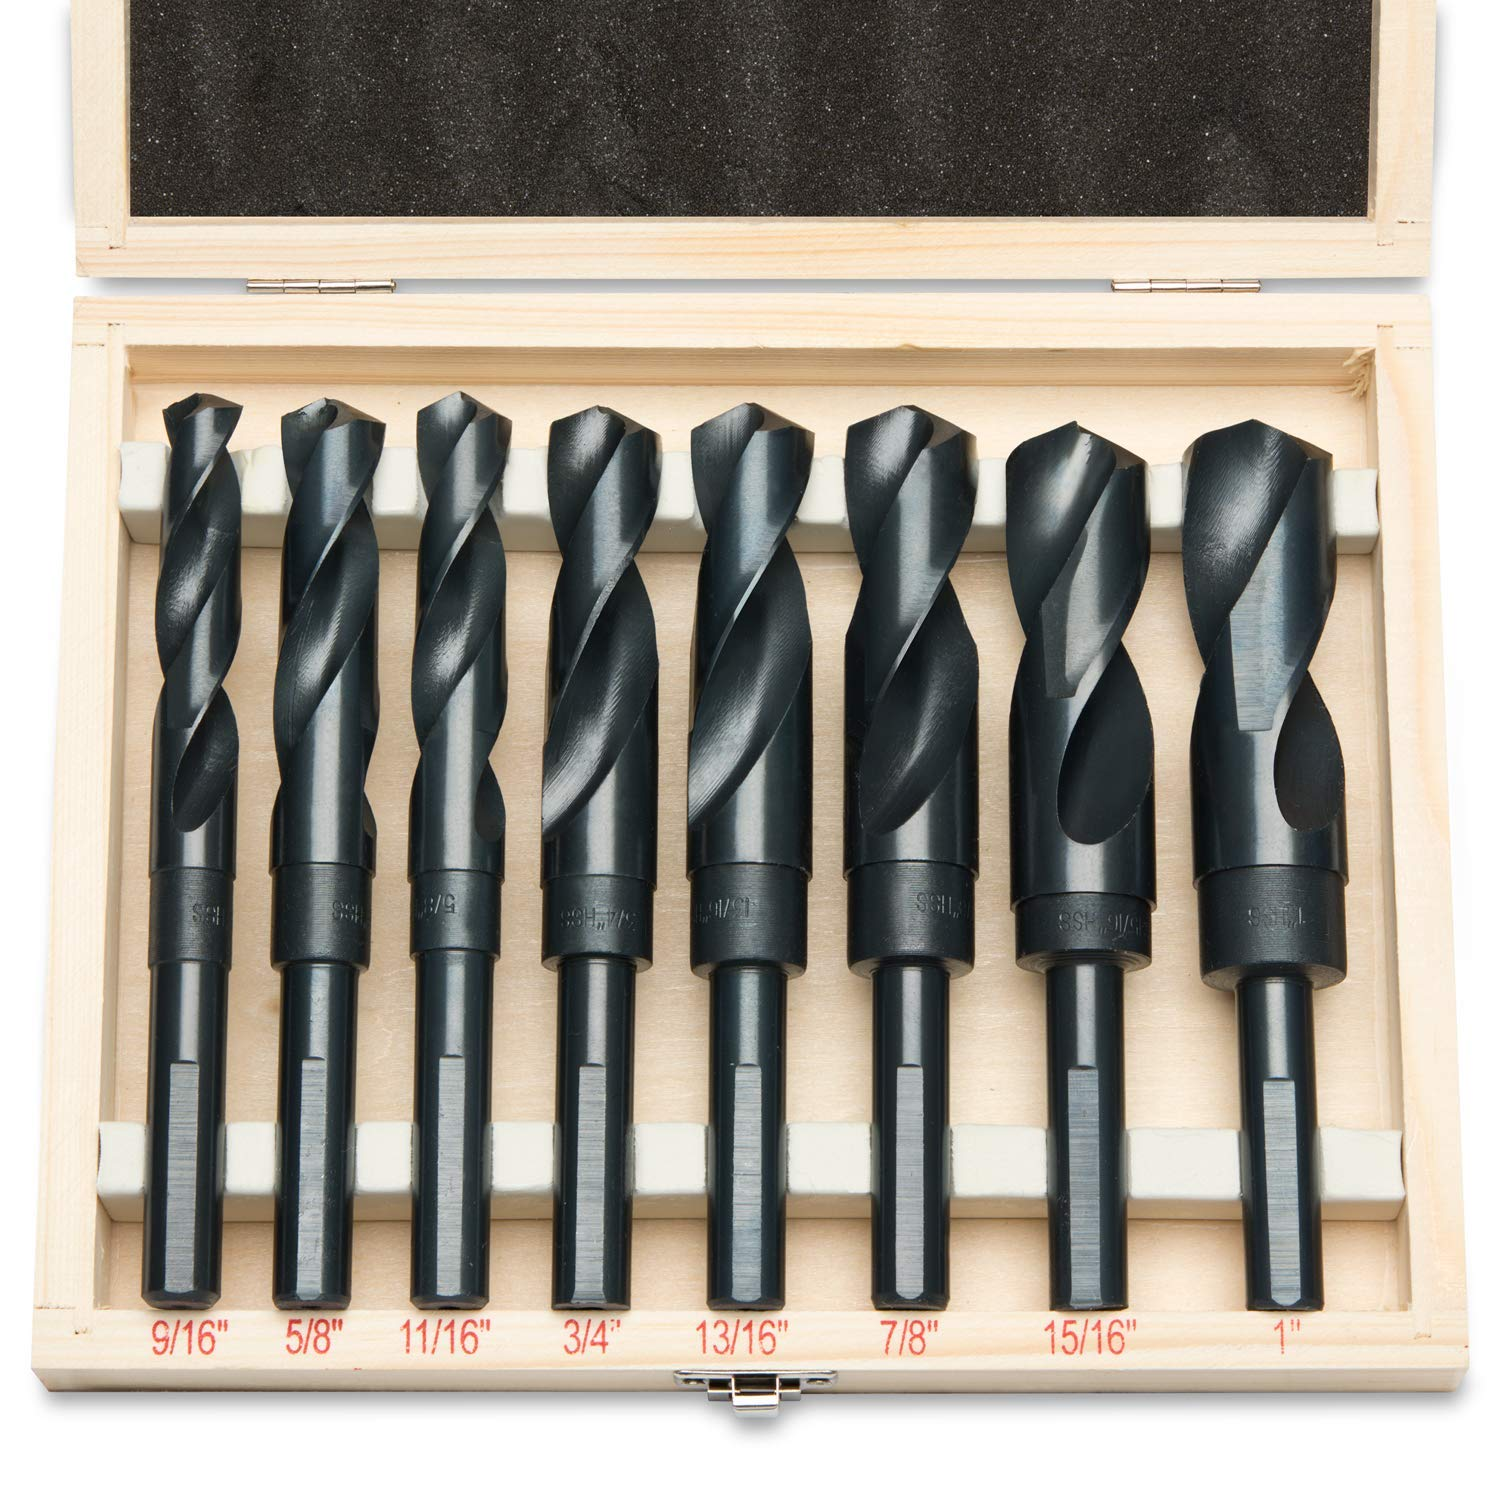 8pc-HSS-Cobalt-Silver-amp-Deming-Drill-Bits-Set-Large-Size-9-16-034-to-1